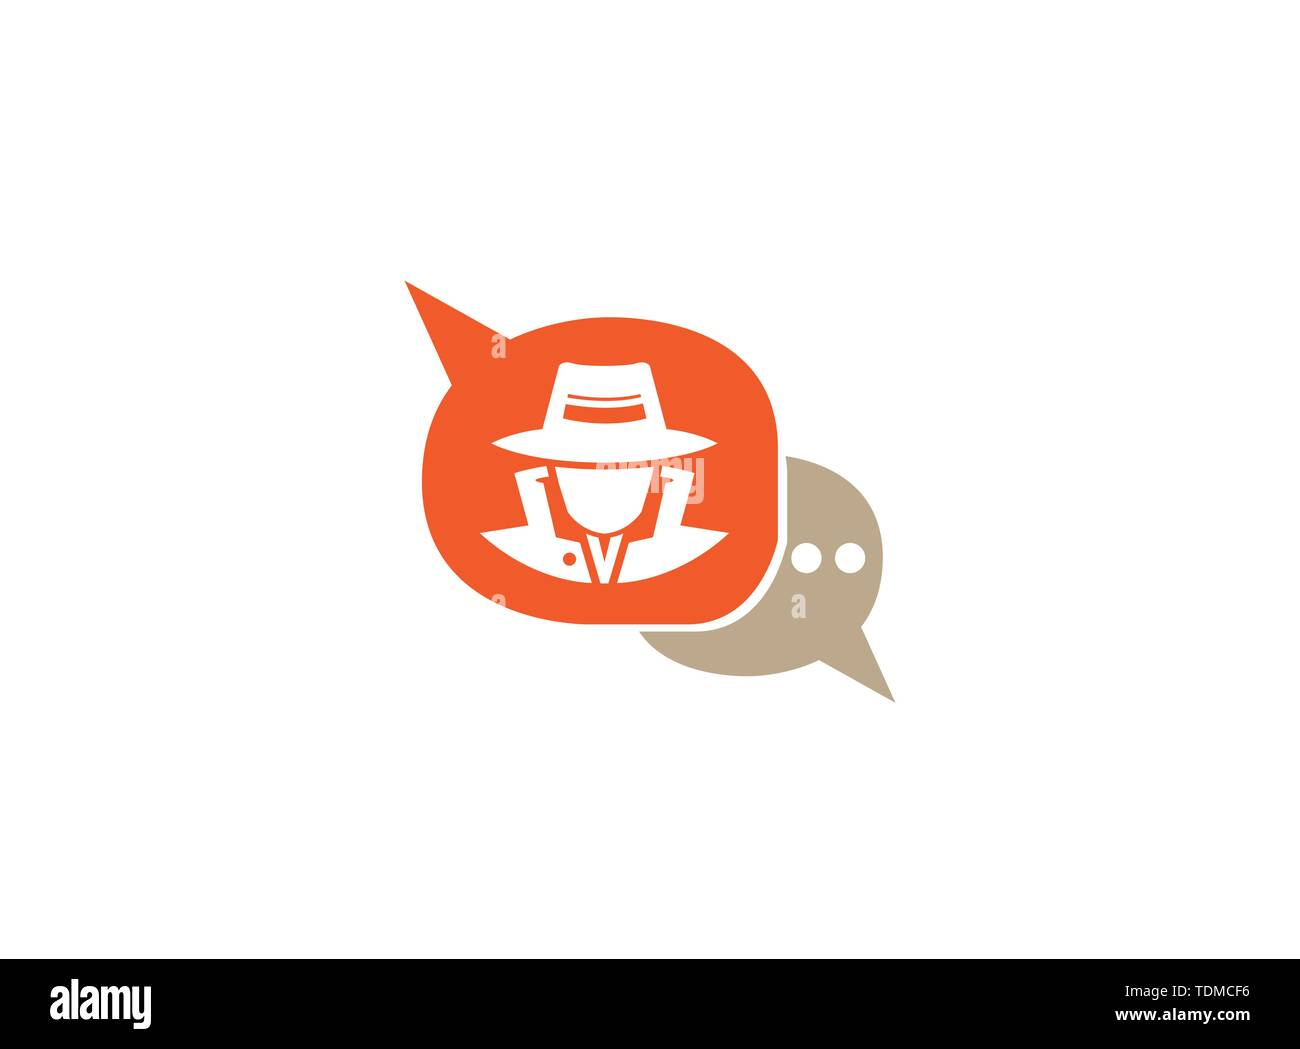 detective spy with hat in a chat icon for logo design illustration, secret job icon - Stock Image